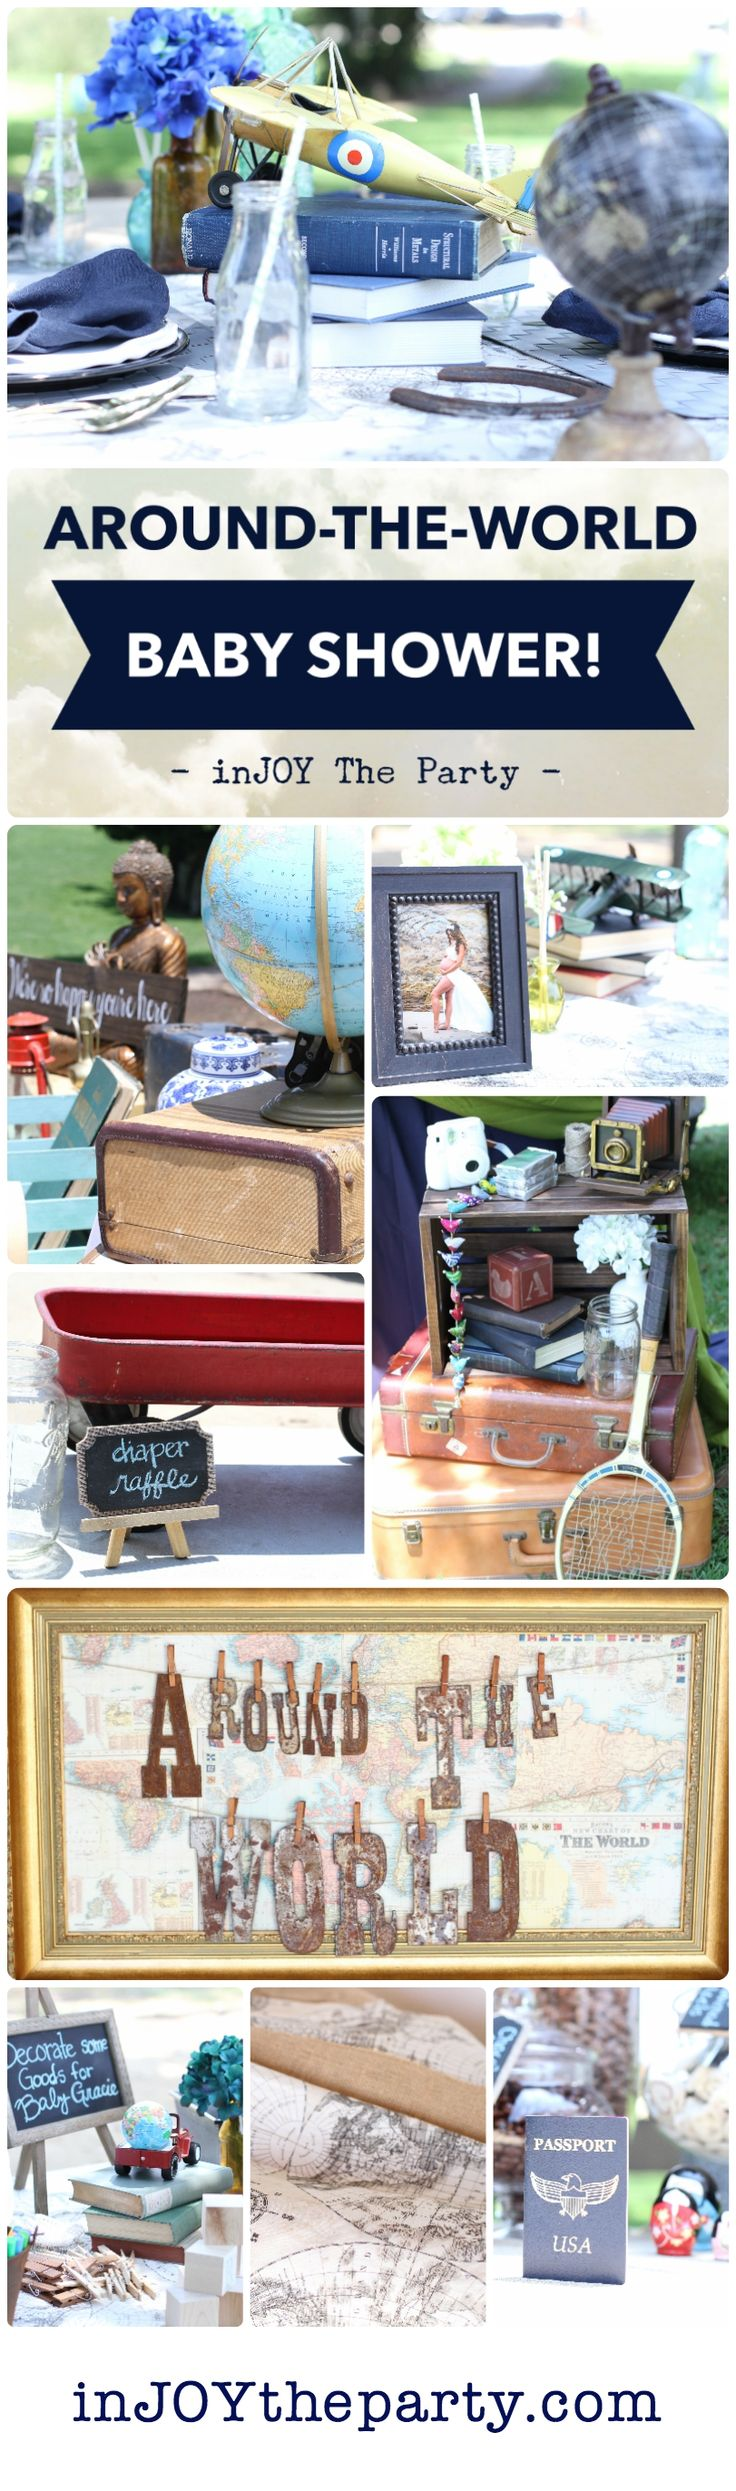 A classic Around-The-World, World Traveler baby shower, bridal shower, or birthday party! Globes, suitcases, airplanes, maps, vintage books...Everything in this prepackaged decor collection is ready to rent!